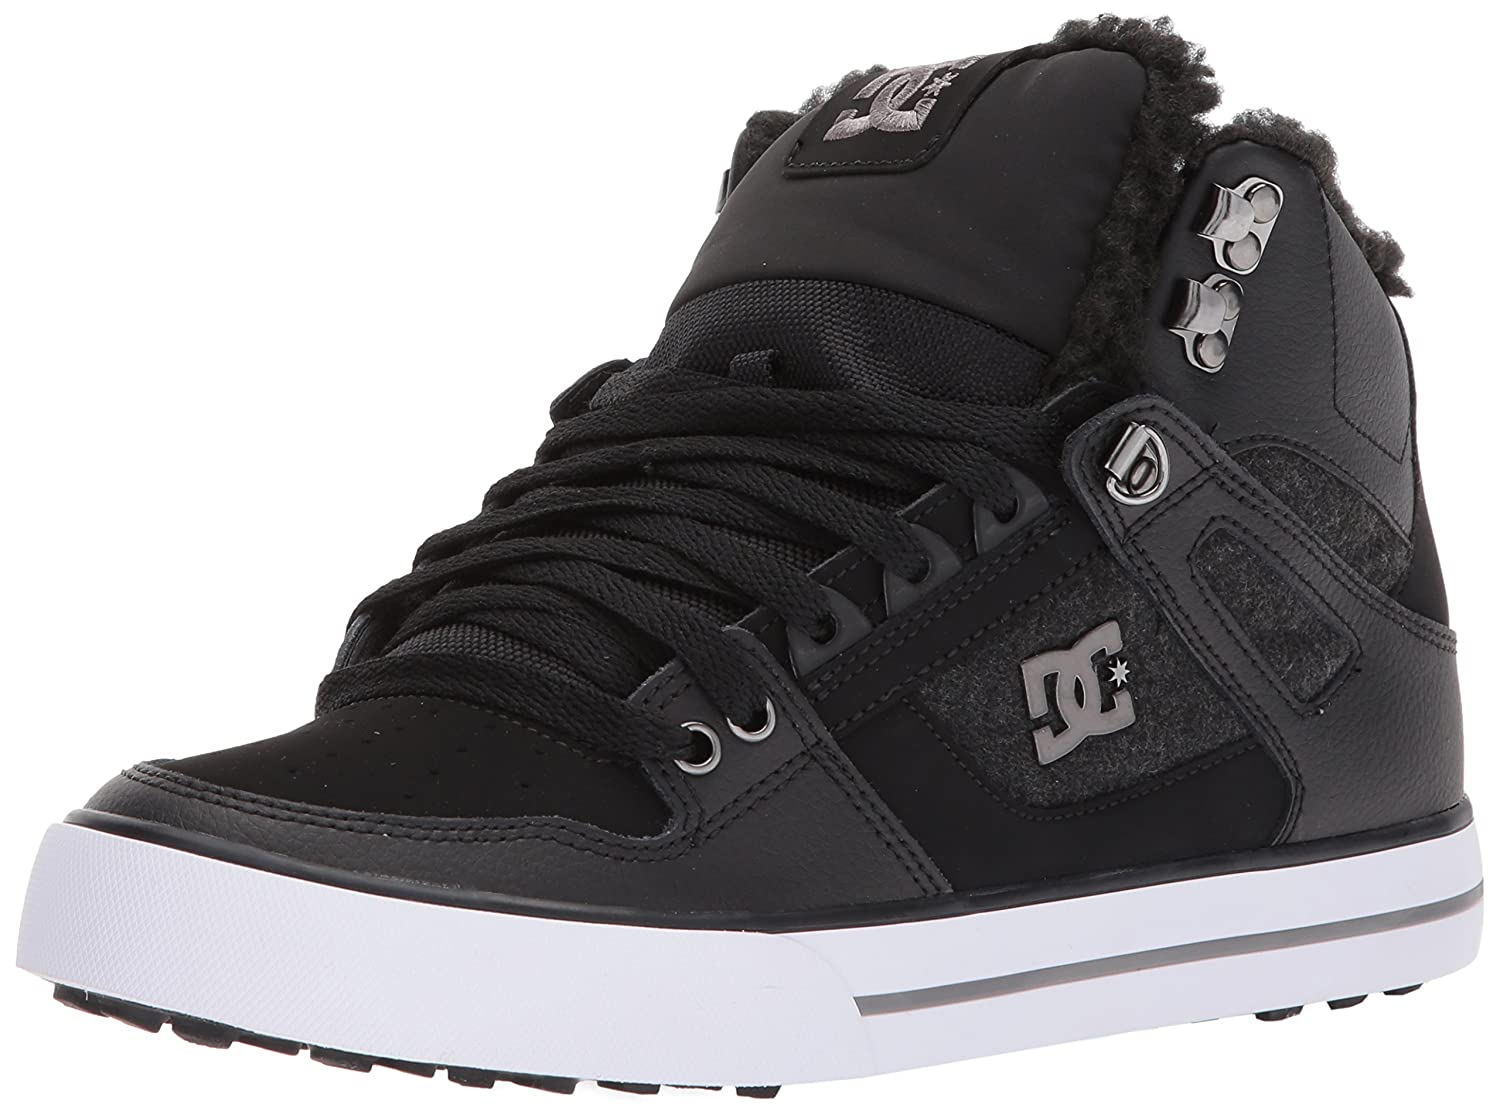 DC Women's Spartan High WC Wnt Skate Shoe B06Y5R7JDK 12.5D D US|Black/Armor